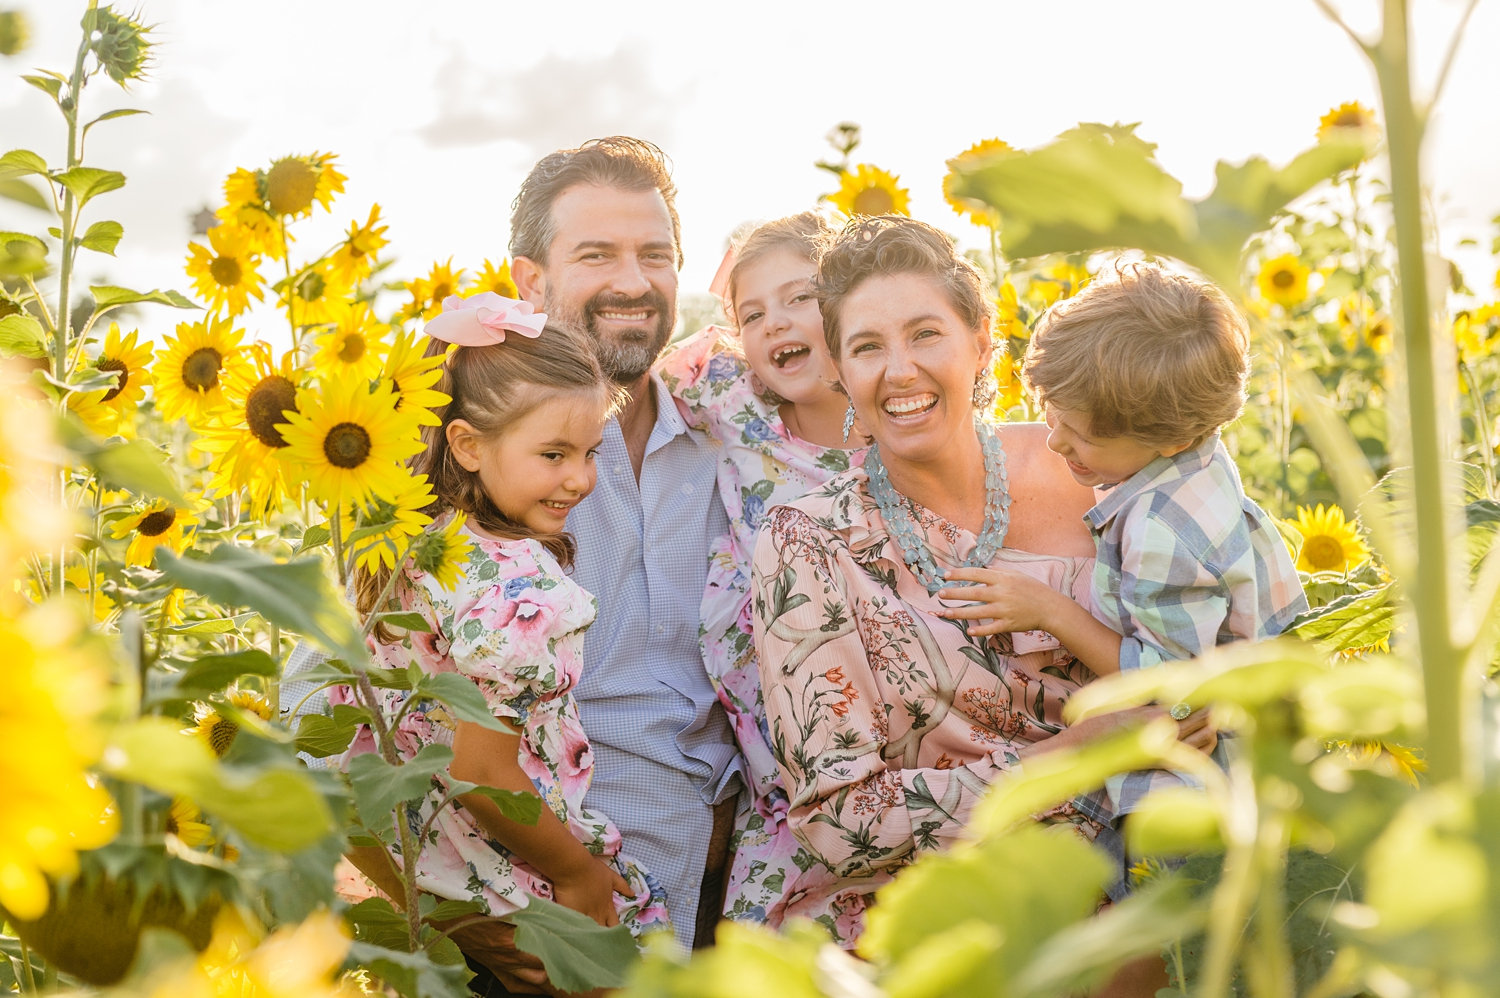 sunflower family photoshoot, sunflower pictures, sunflower family pictures, Rya Photography